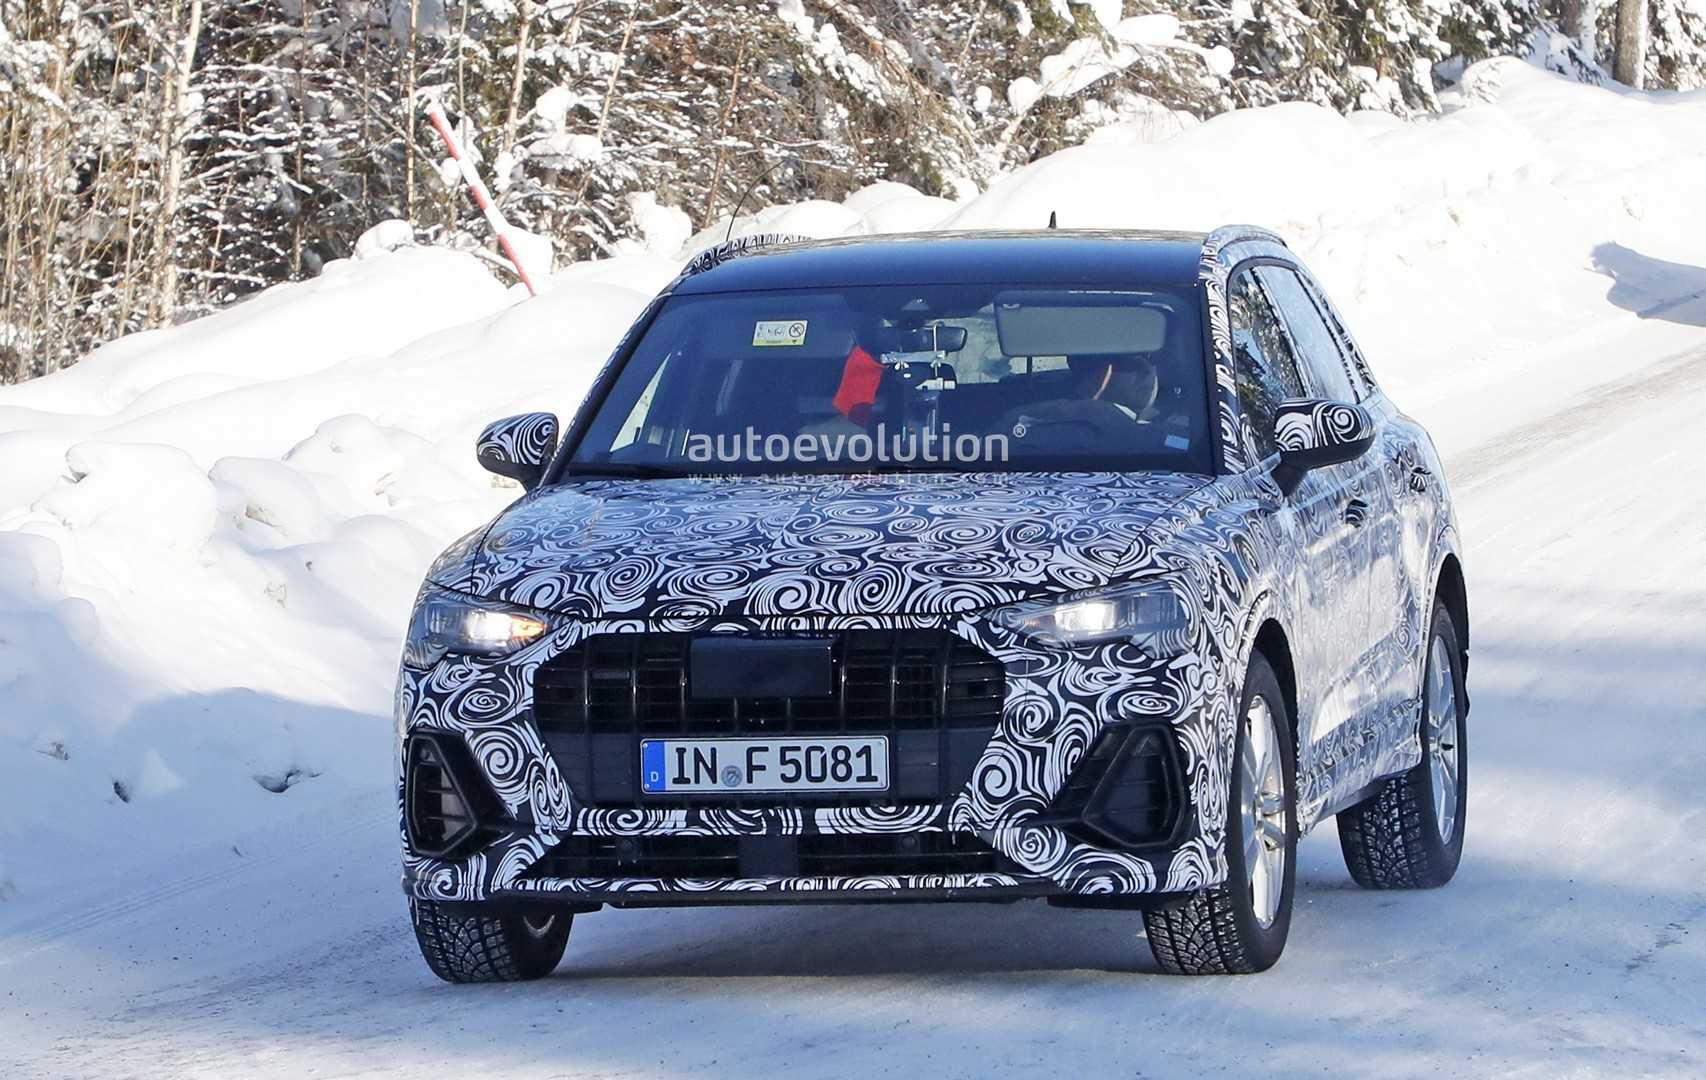 ... 2019 Audi Q3 Interior Revealed By Latest Spyshots, Could Be The SQ3 ...